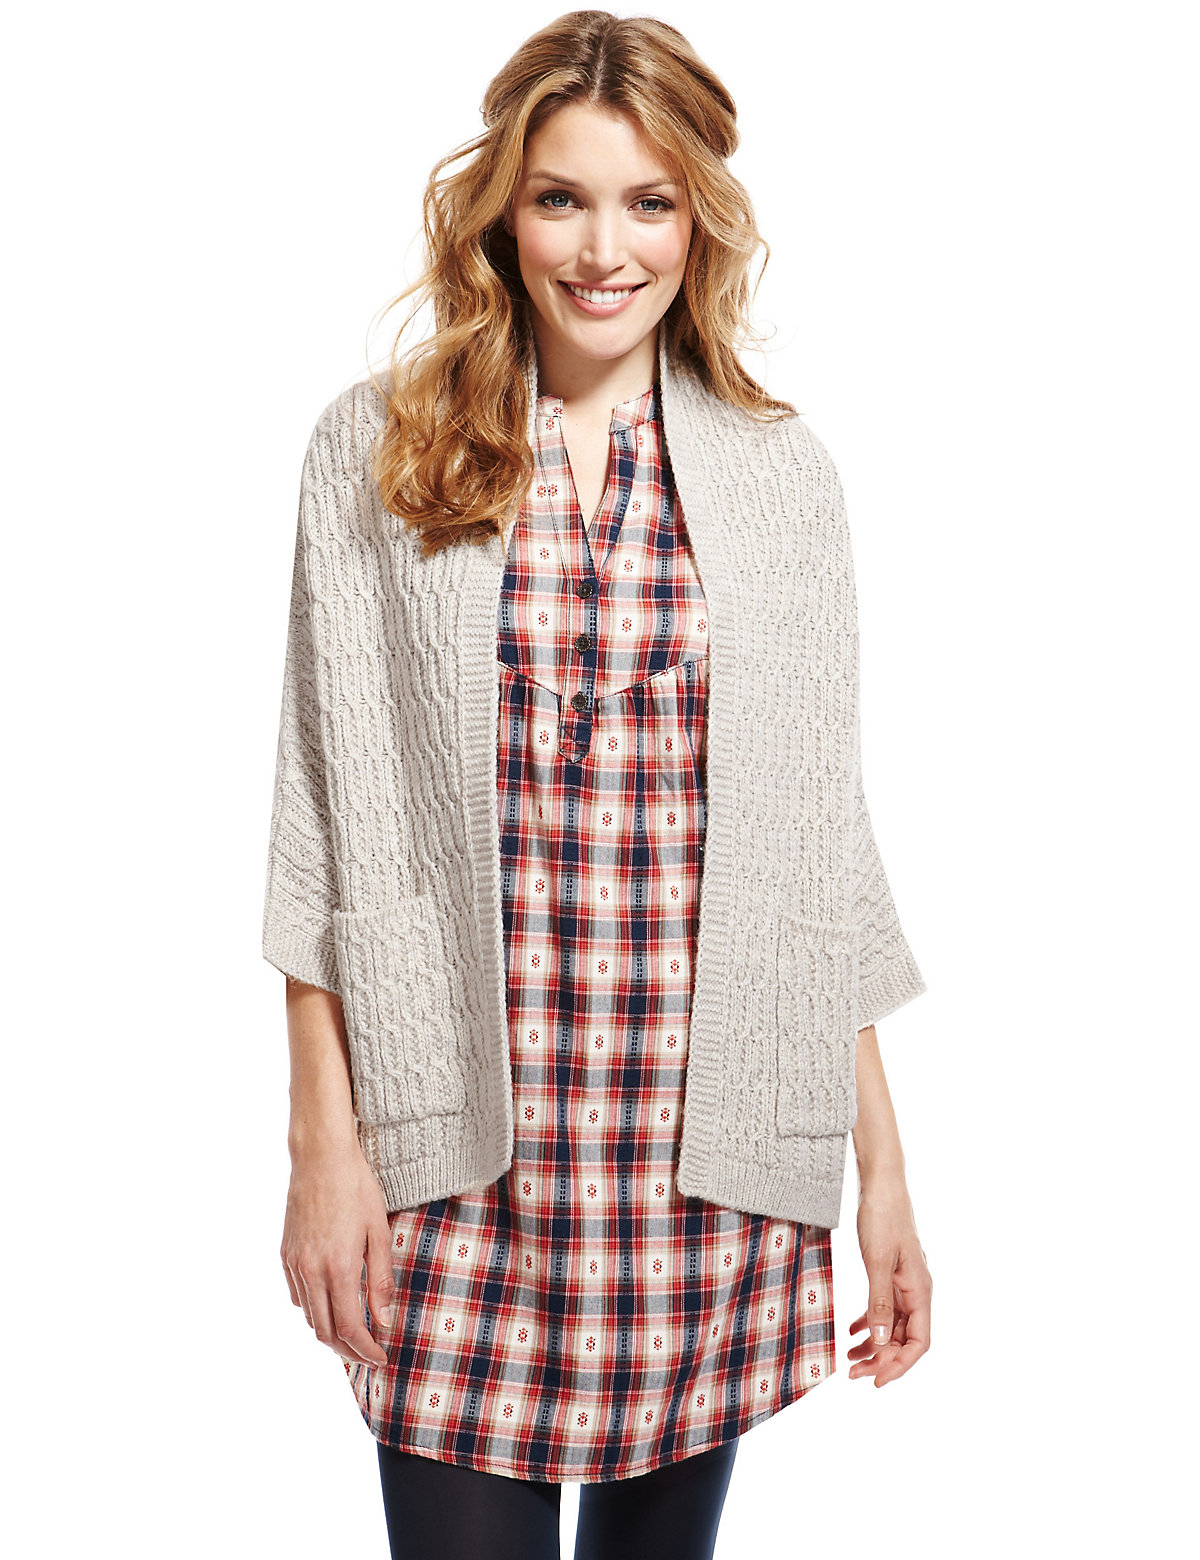 Indigo Collection Open Front Cable Knit Kimono Cardigan with Wool $39.50 AT vintagedancer.com